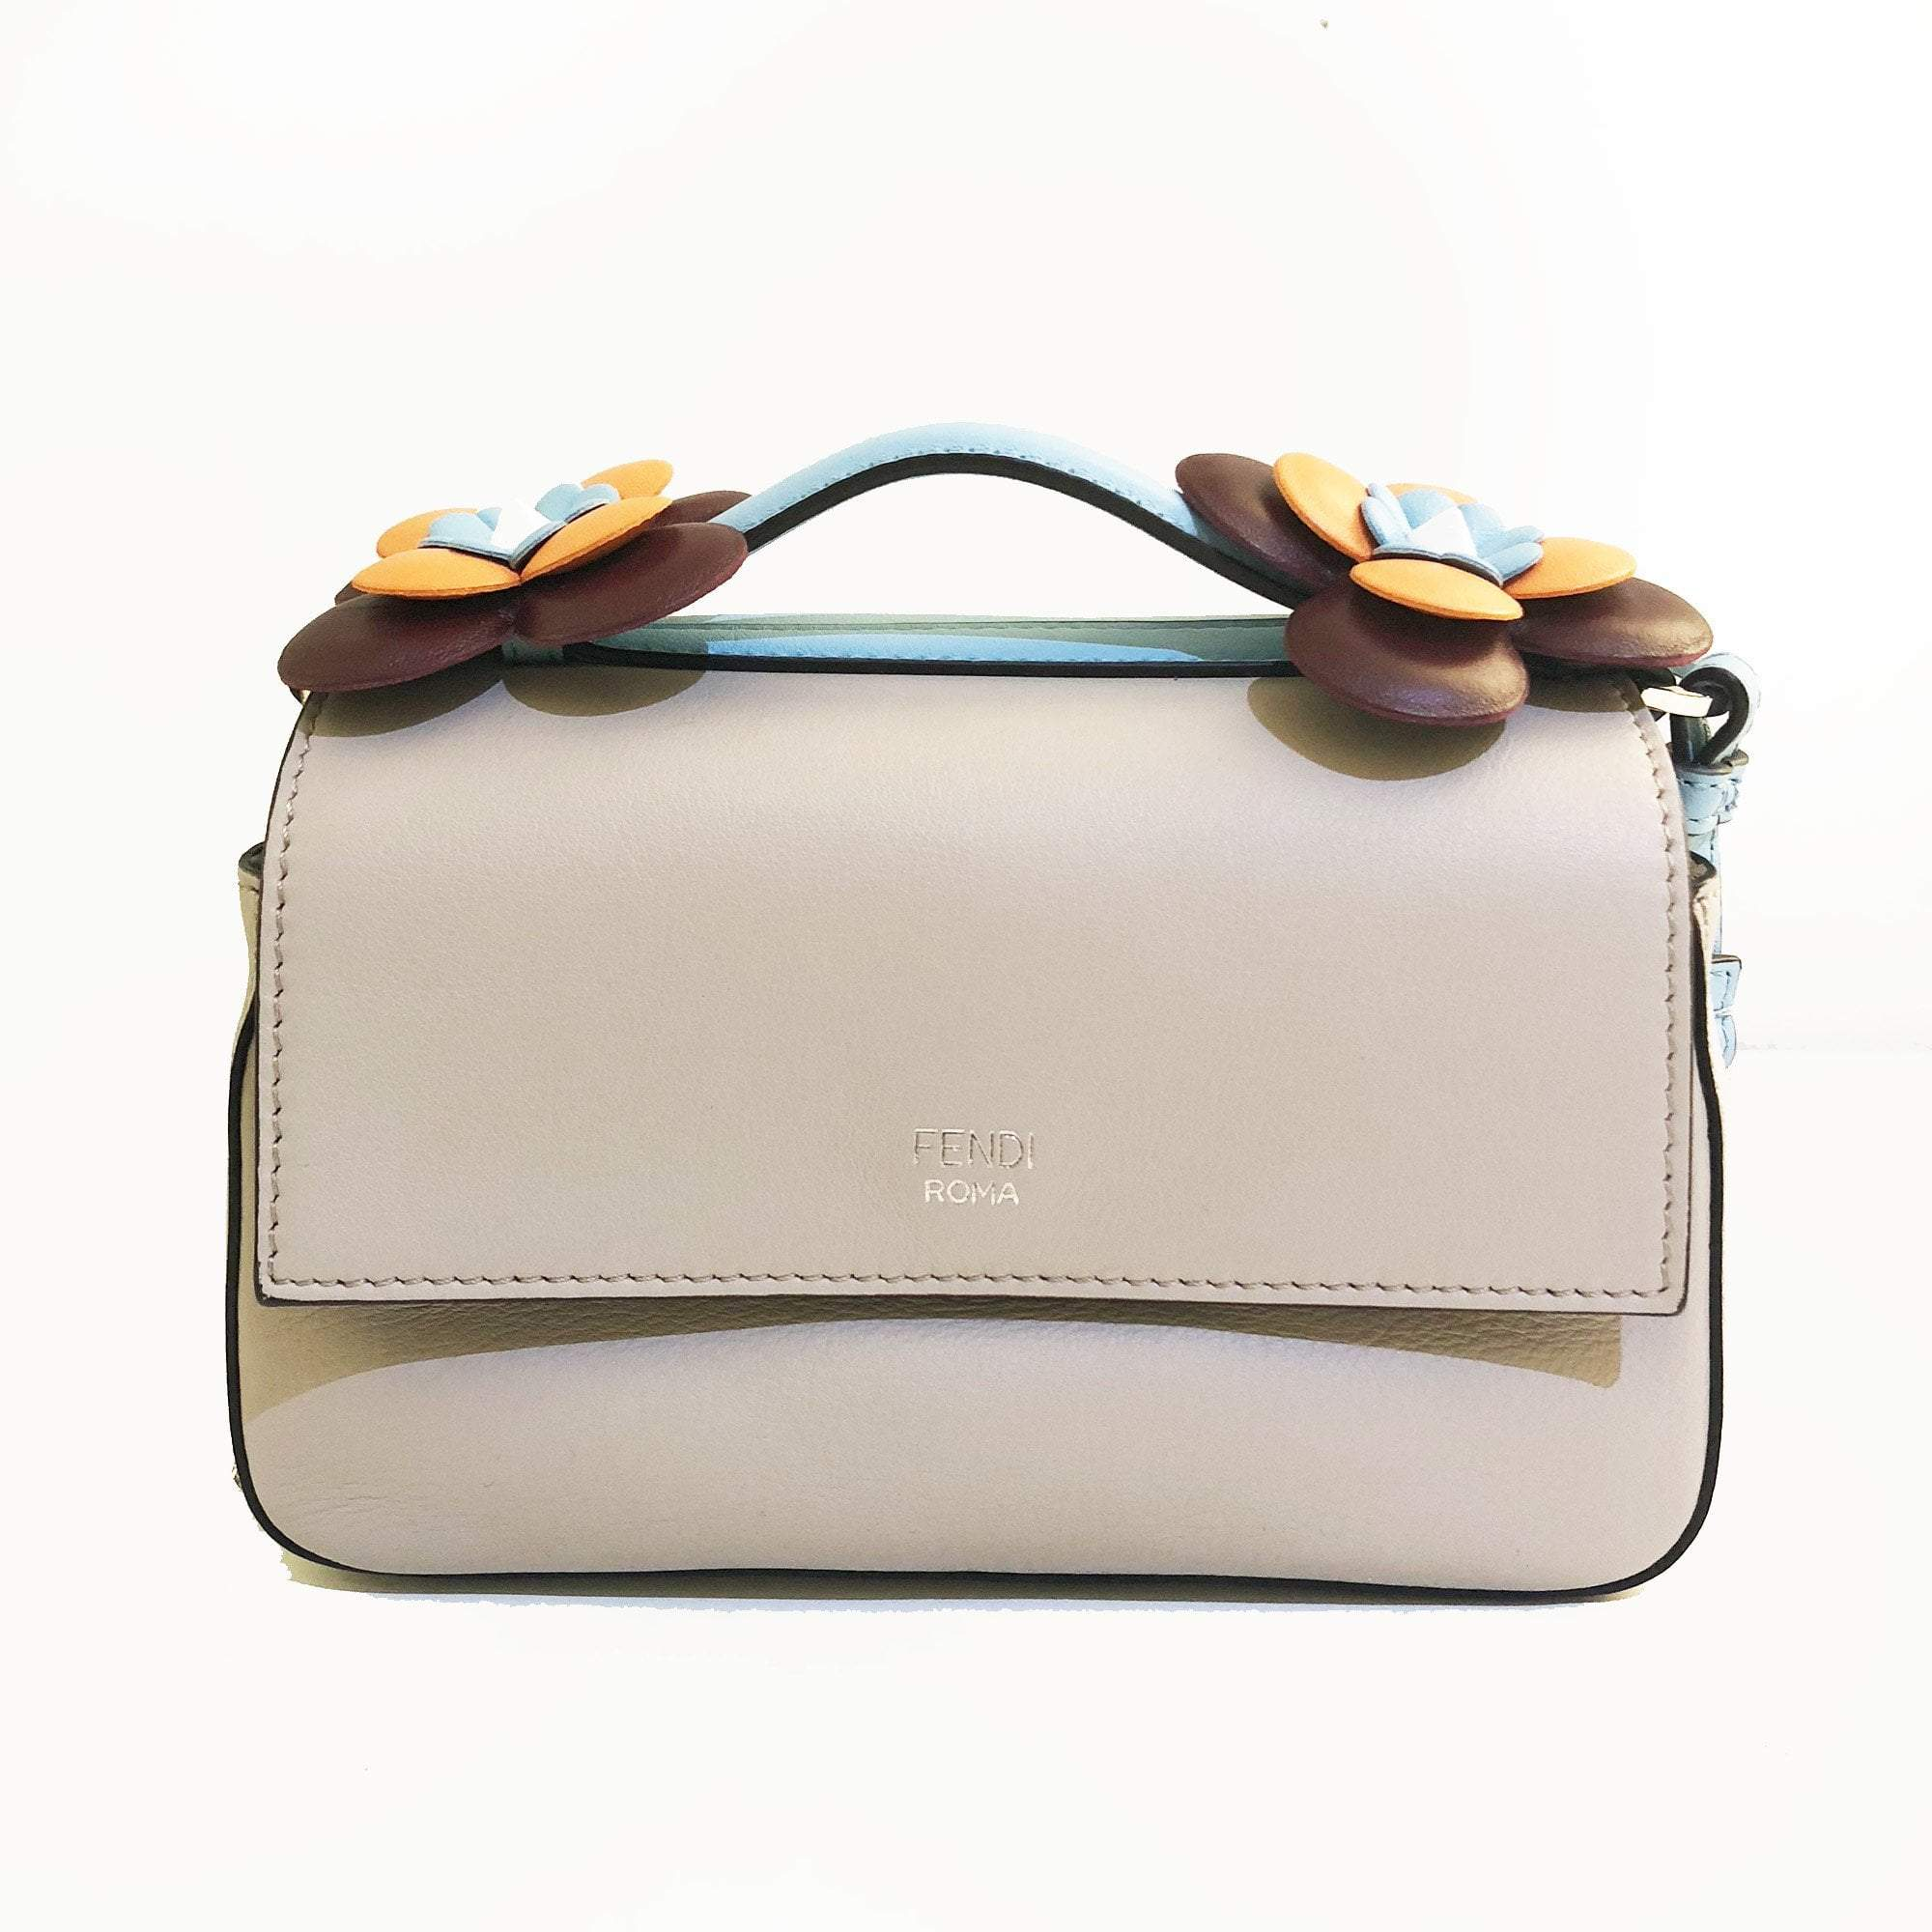 Fendi Double Micro Baguette Crossbody Bag